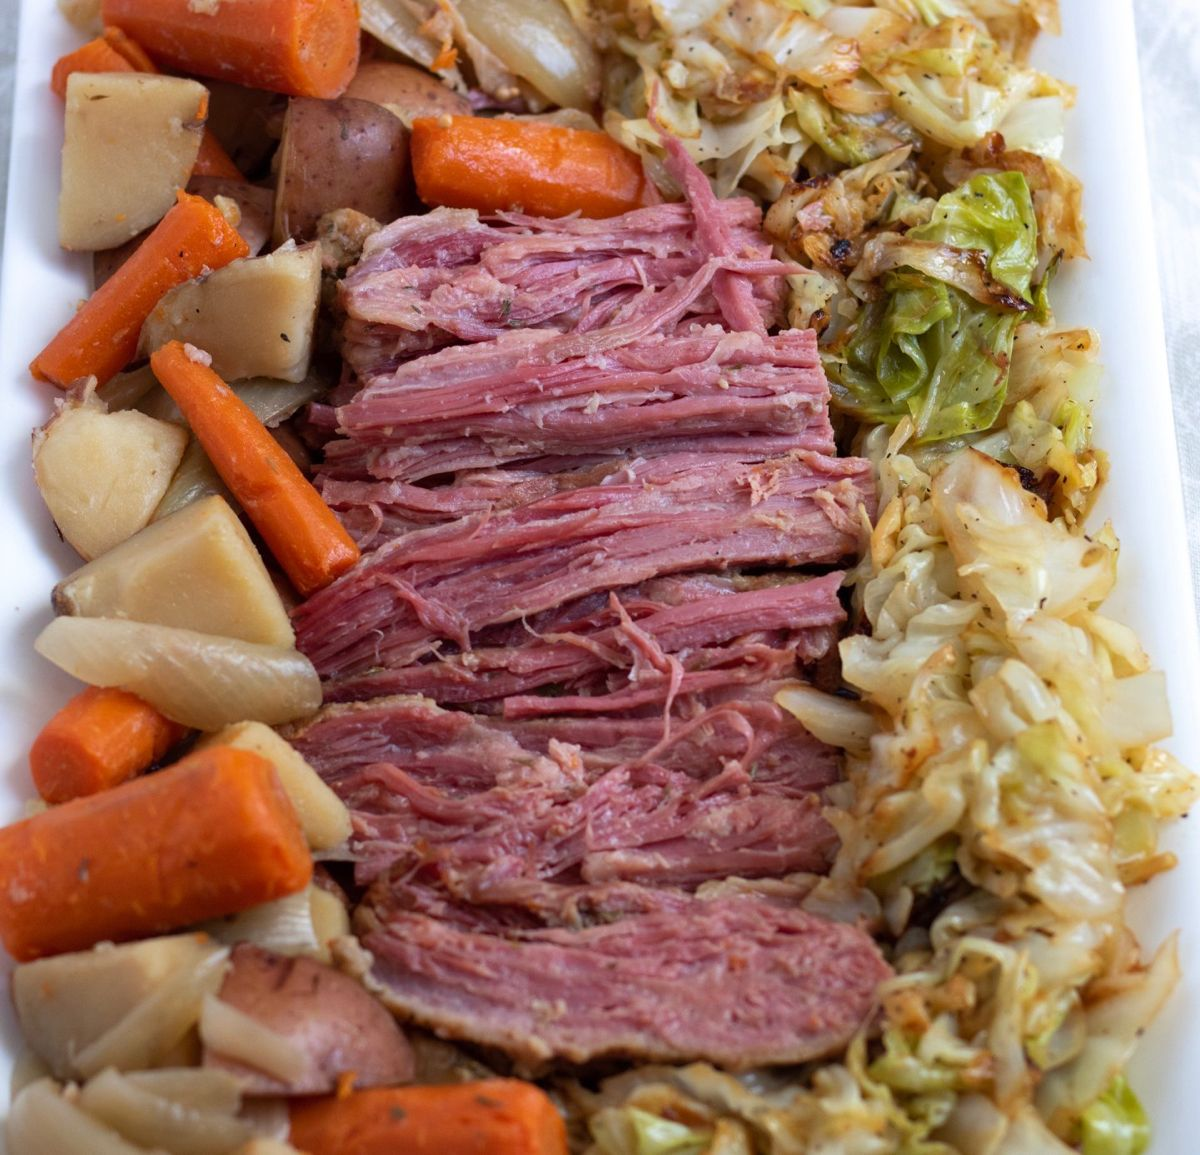 Crockpot Corned Beef And Cabbage Dinner Wine A Little Cook A Lot In 2020 Corn Beef And Cabbage Beef Recipes Corned Beef